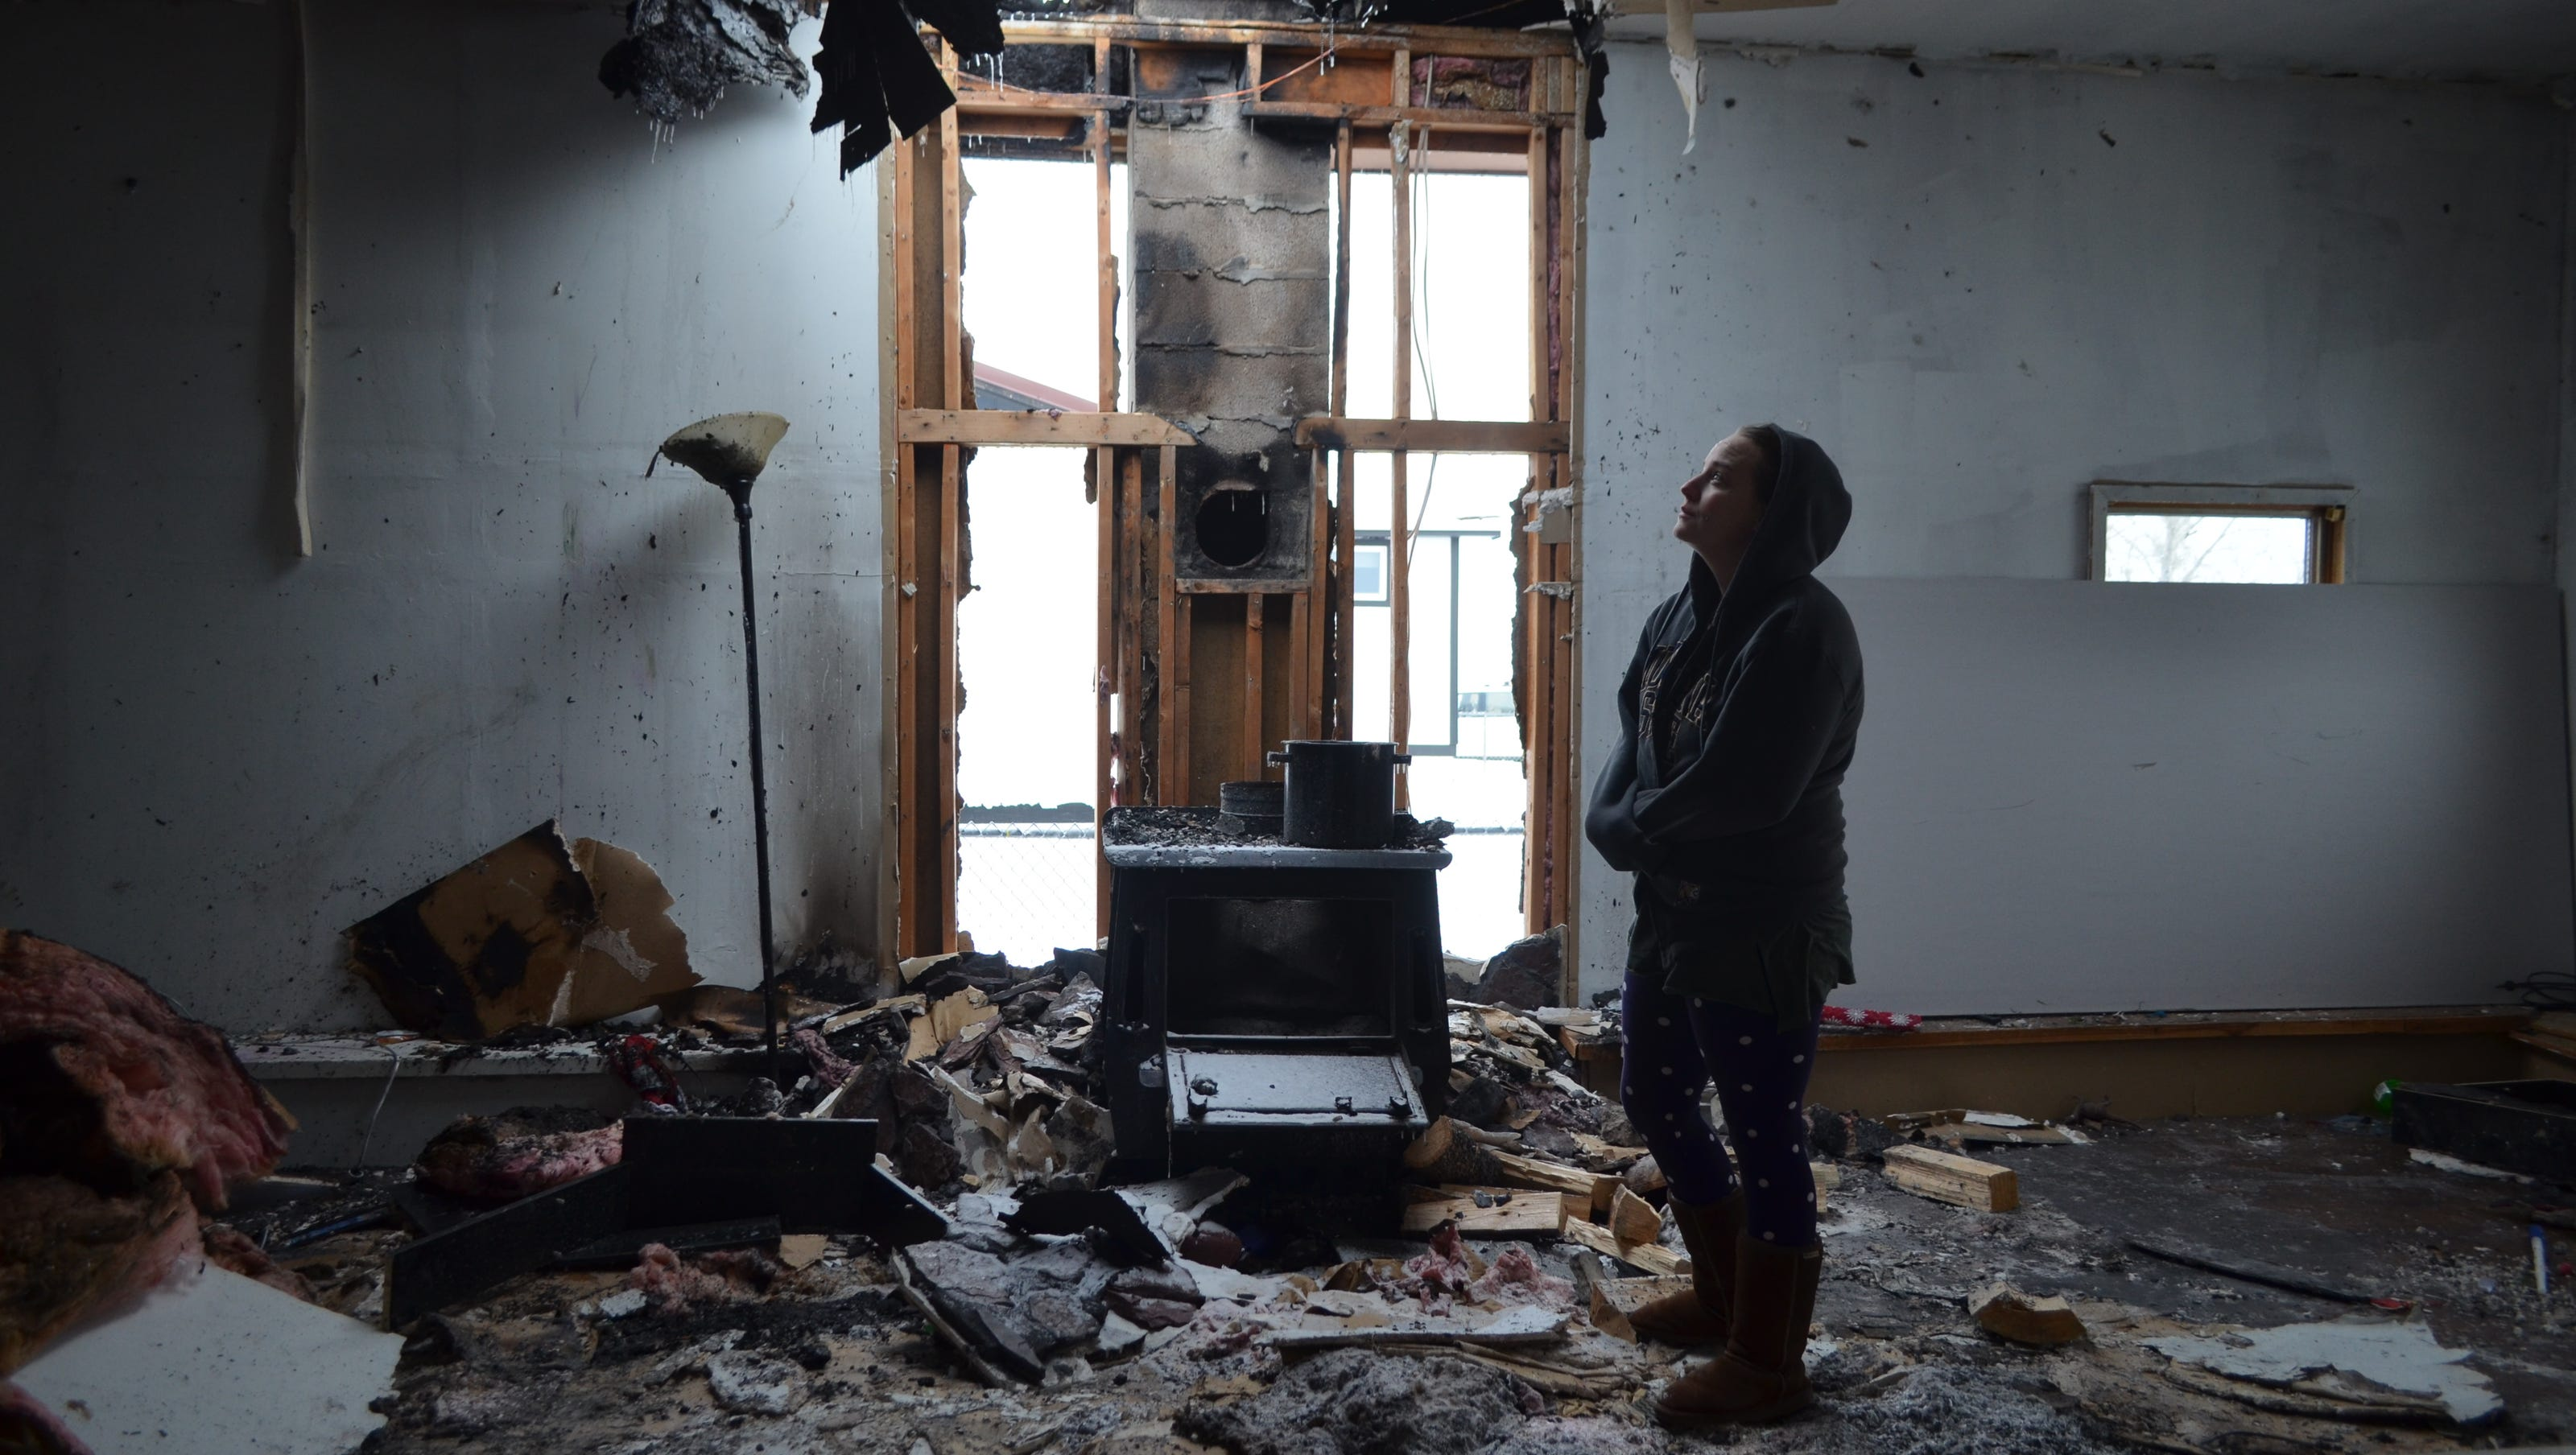 Lithia Great Falls >> Lithia Dodge offers to match donations for Sun Prairie family after house fire